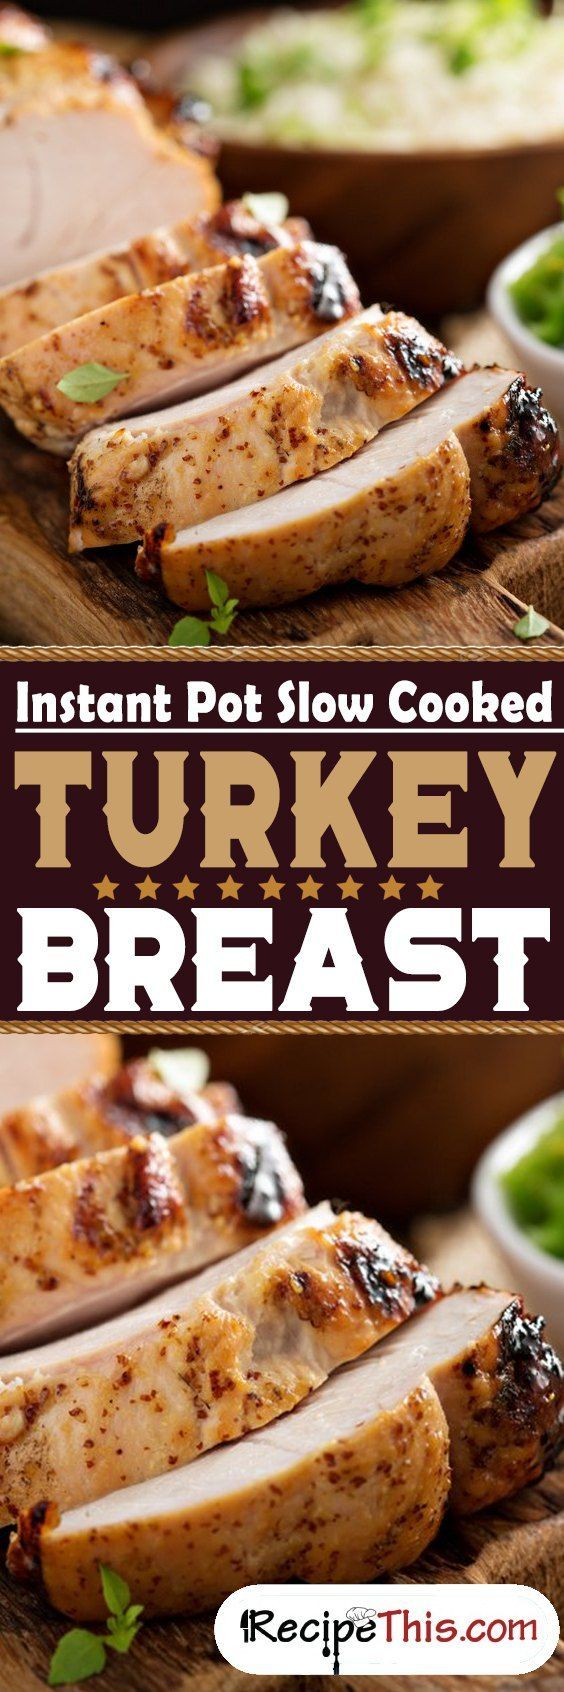 Instant Pot Slow Cooked Turkey Breast